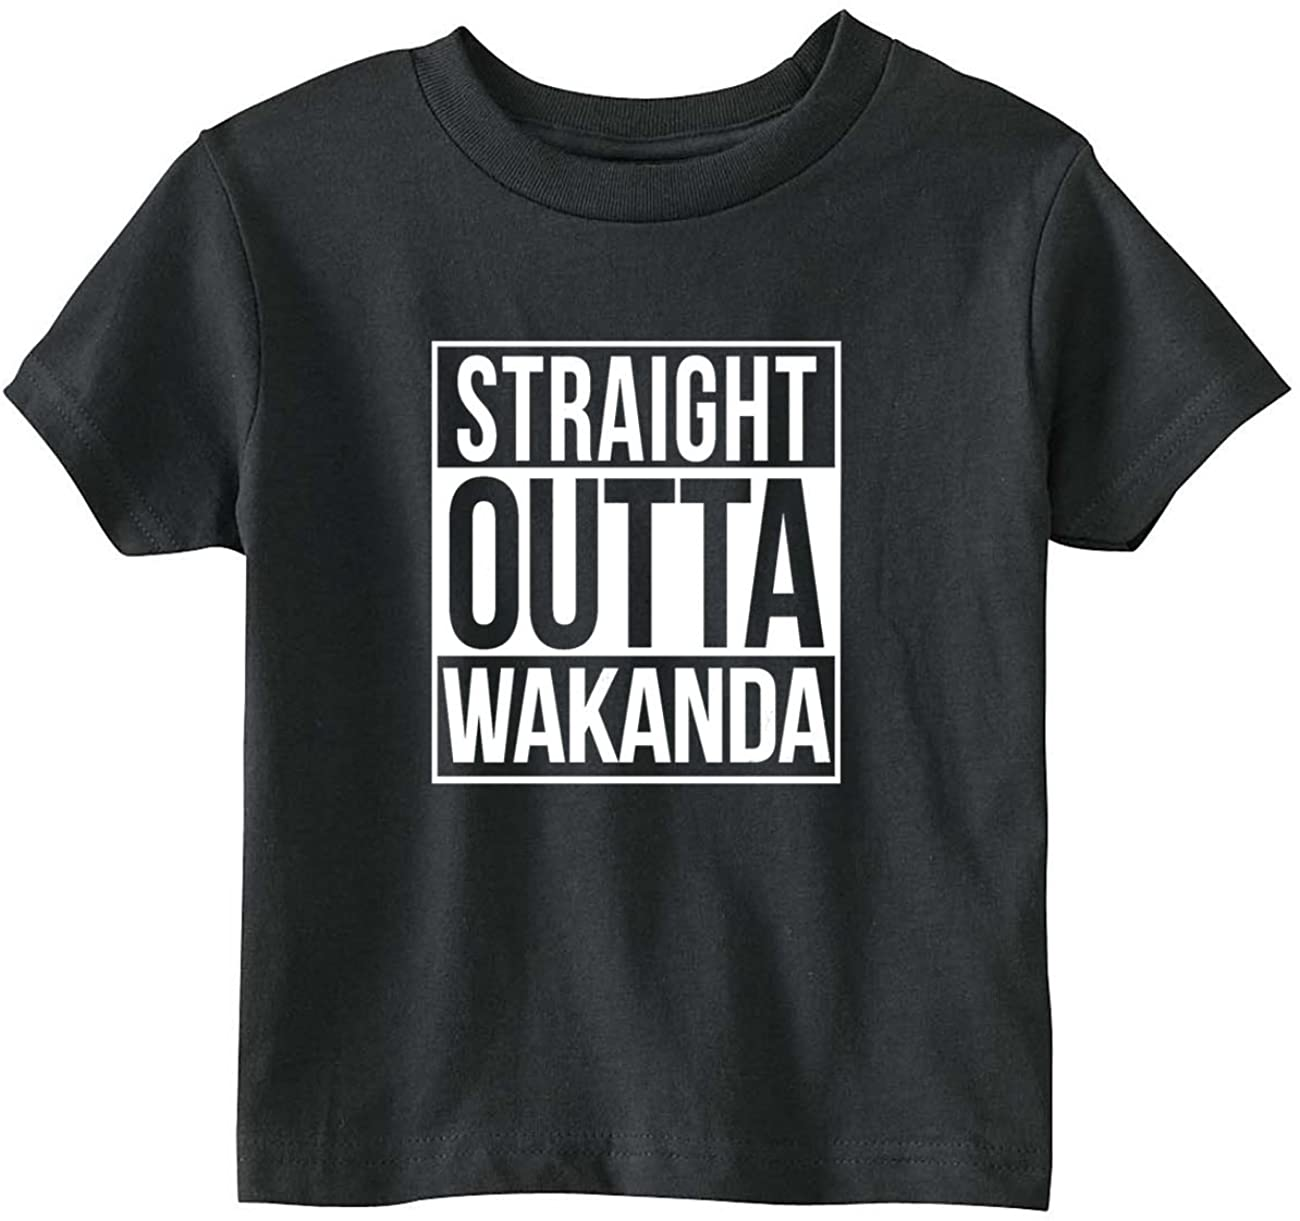 NorthStarTees Black Panther Baby One Piece Straight Outta Wakanda Bodysuit